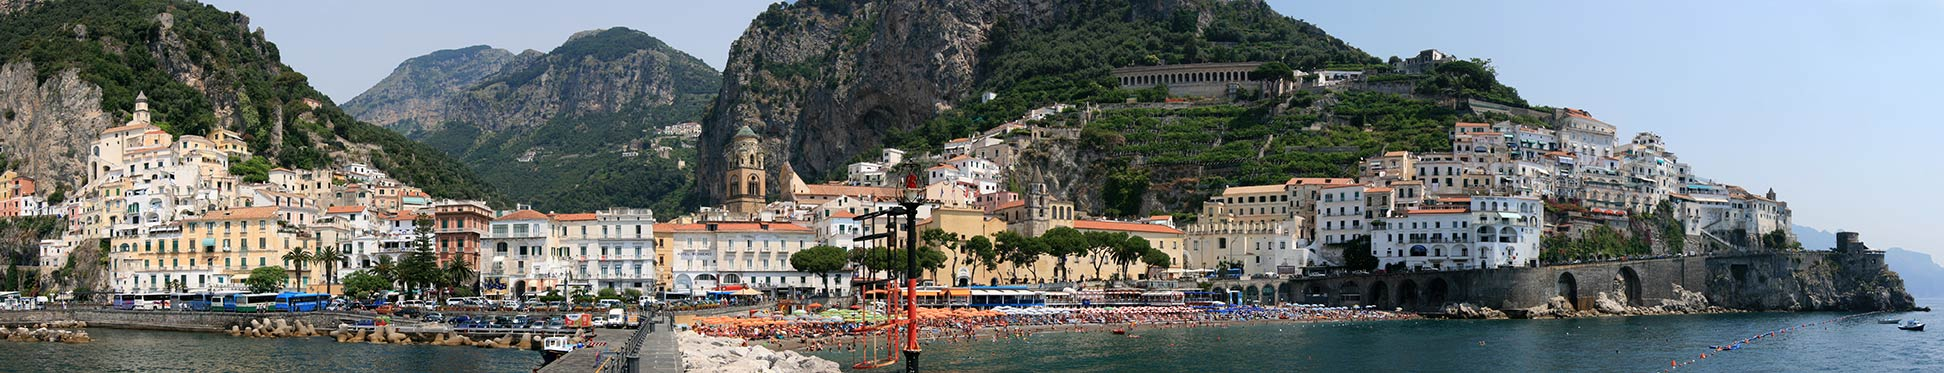 Panoramic view of Amalfi with the Amalfi Cathedral in Southern Italy